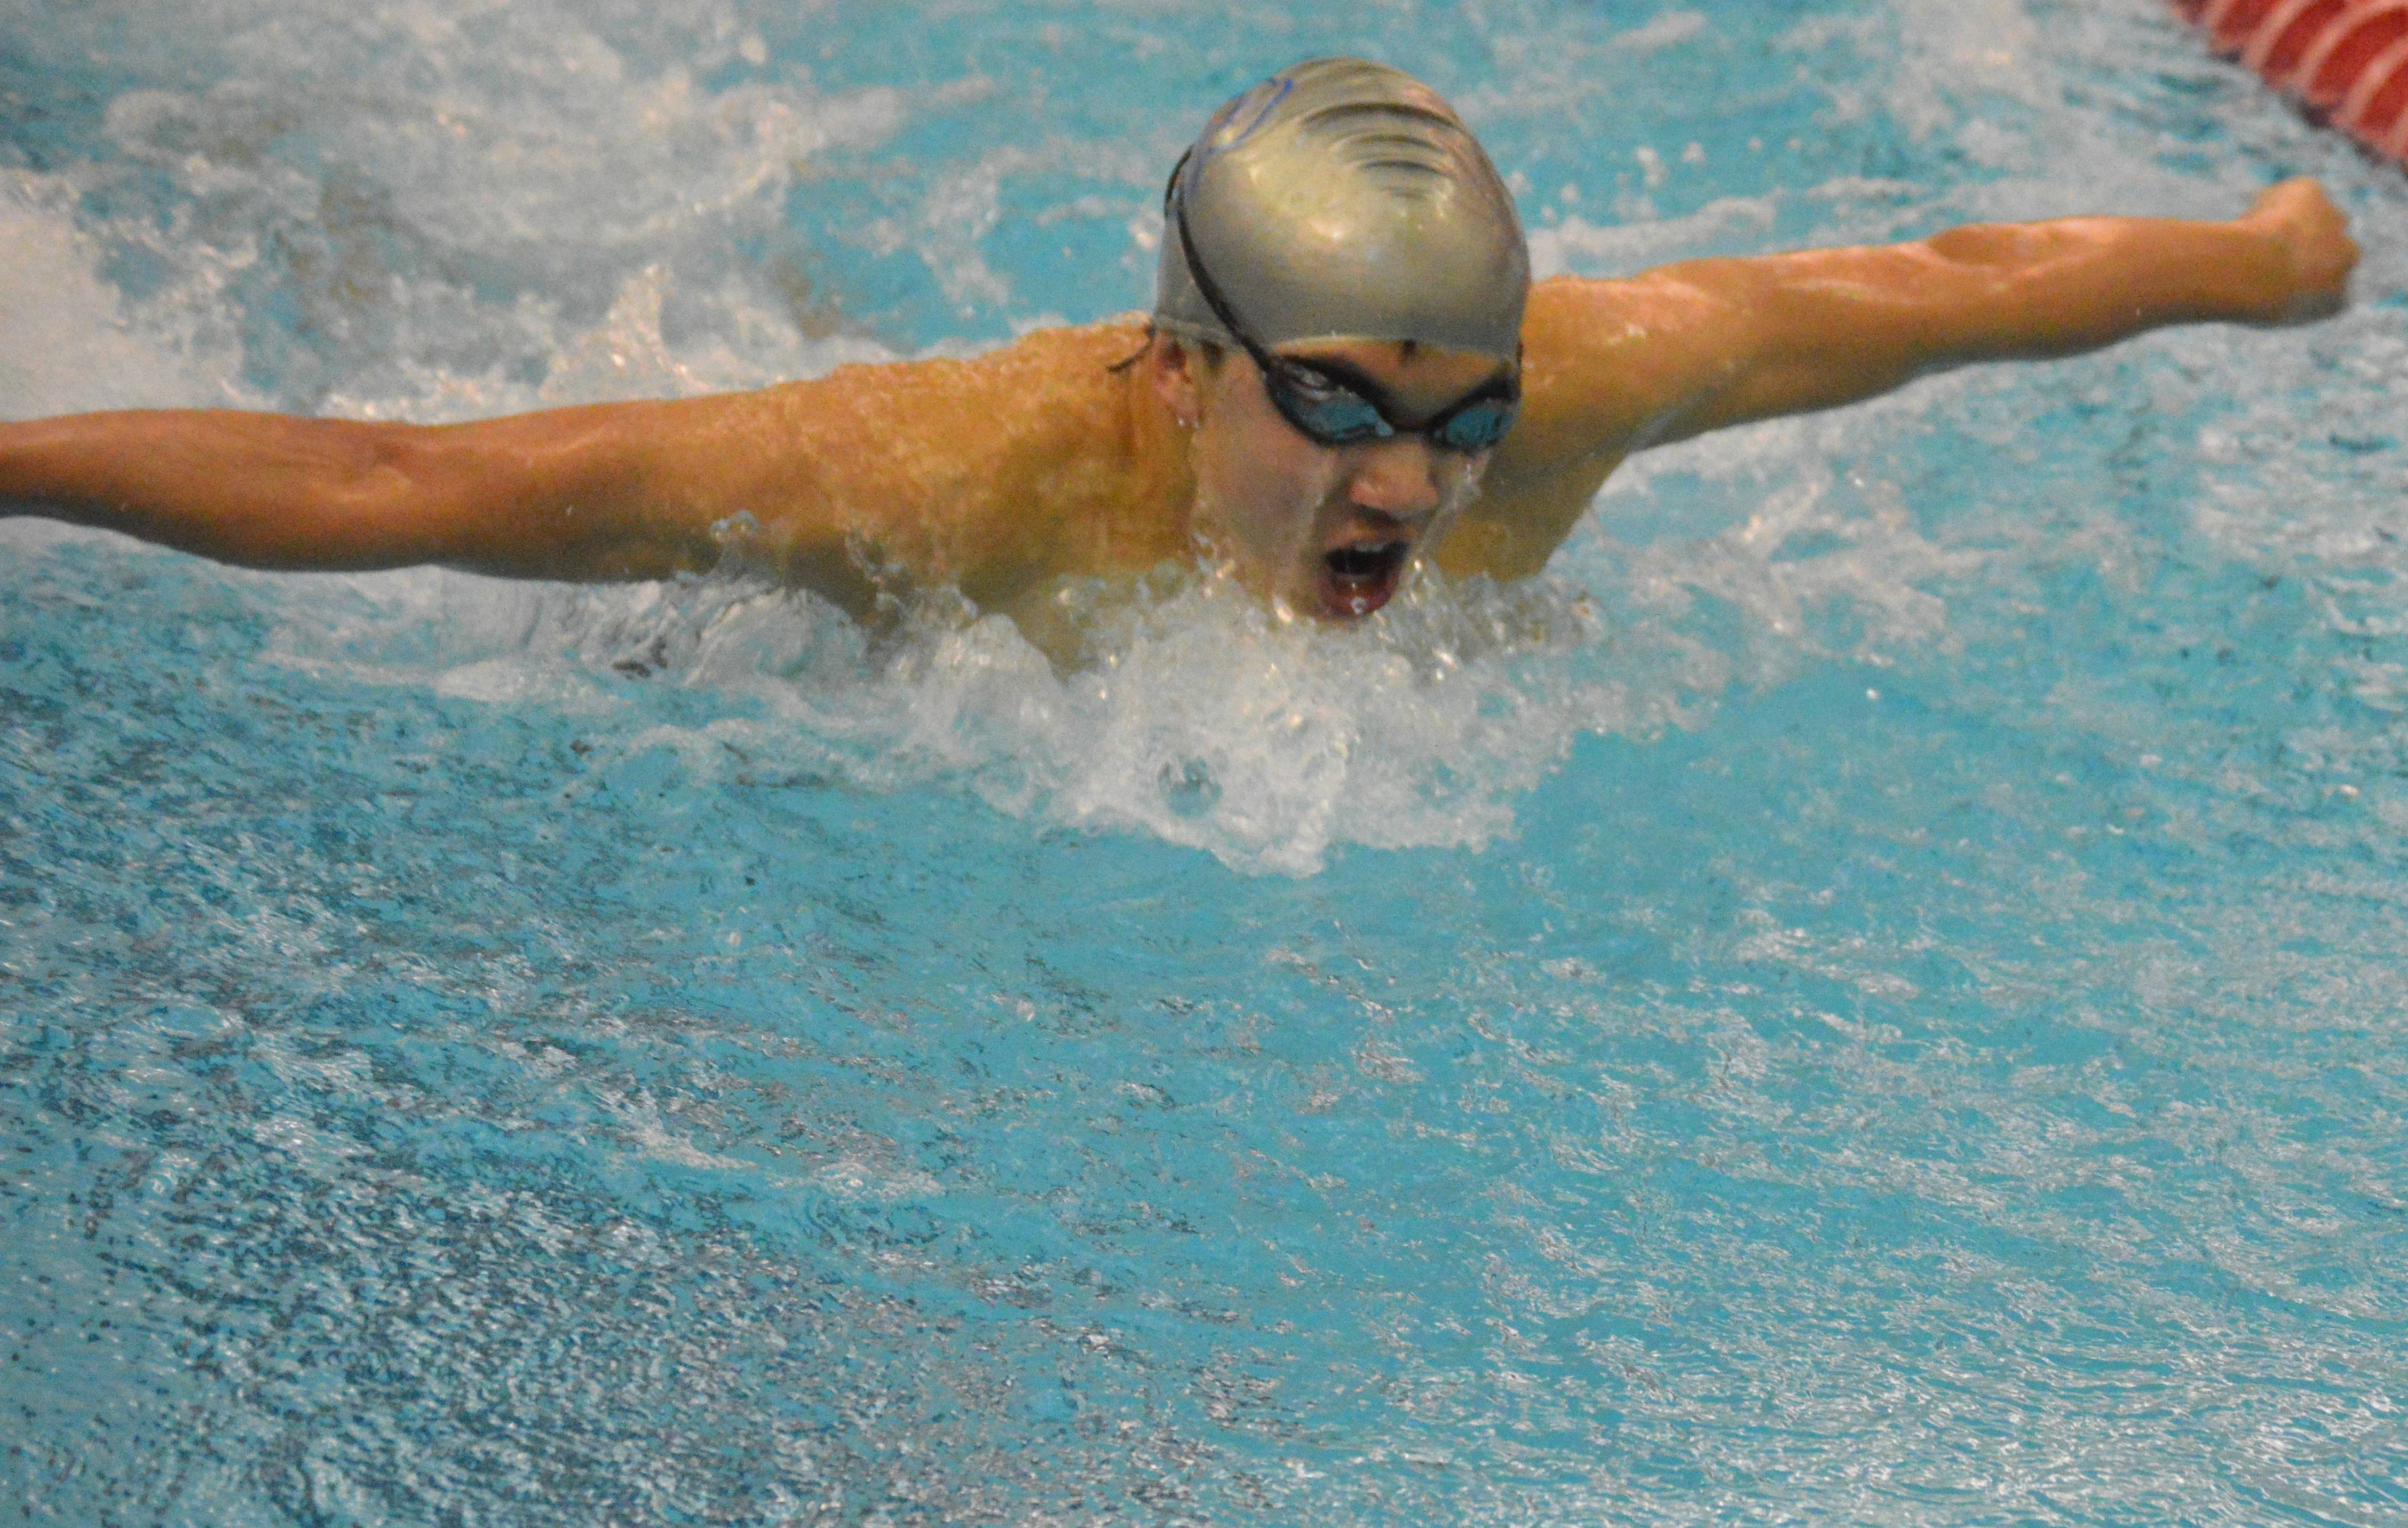 550ca30afab4e6805be9_1-18-17_Alan_Shao_wins_the_100_Butterfly.JPG